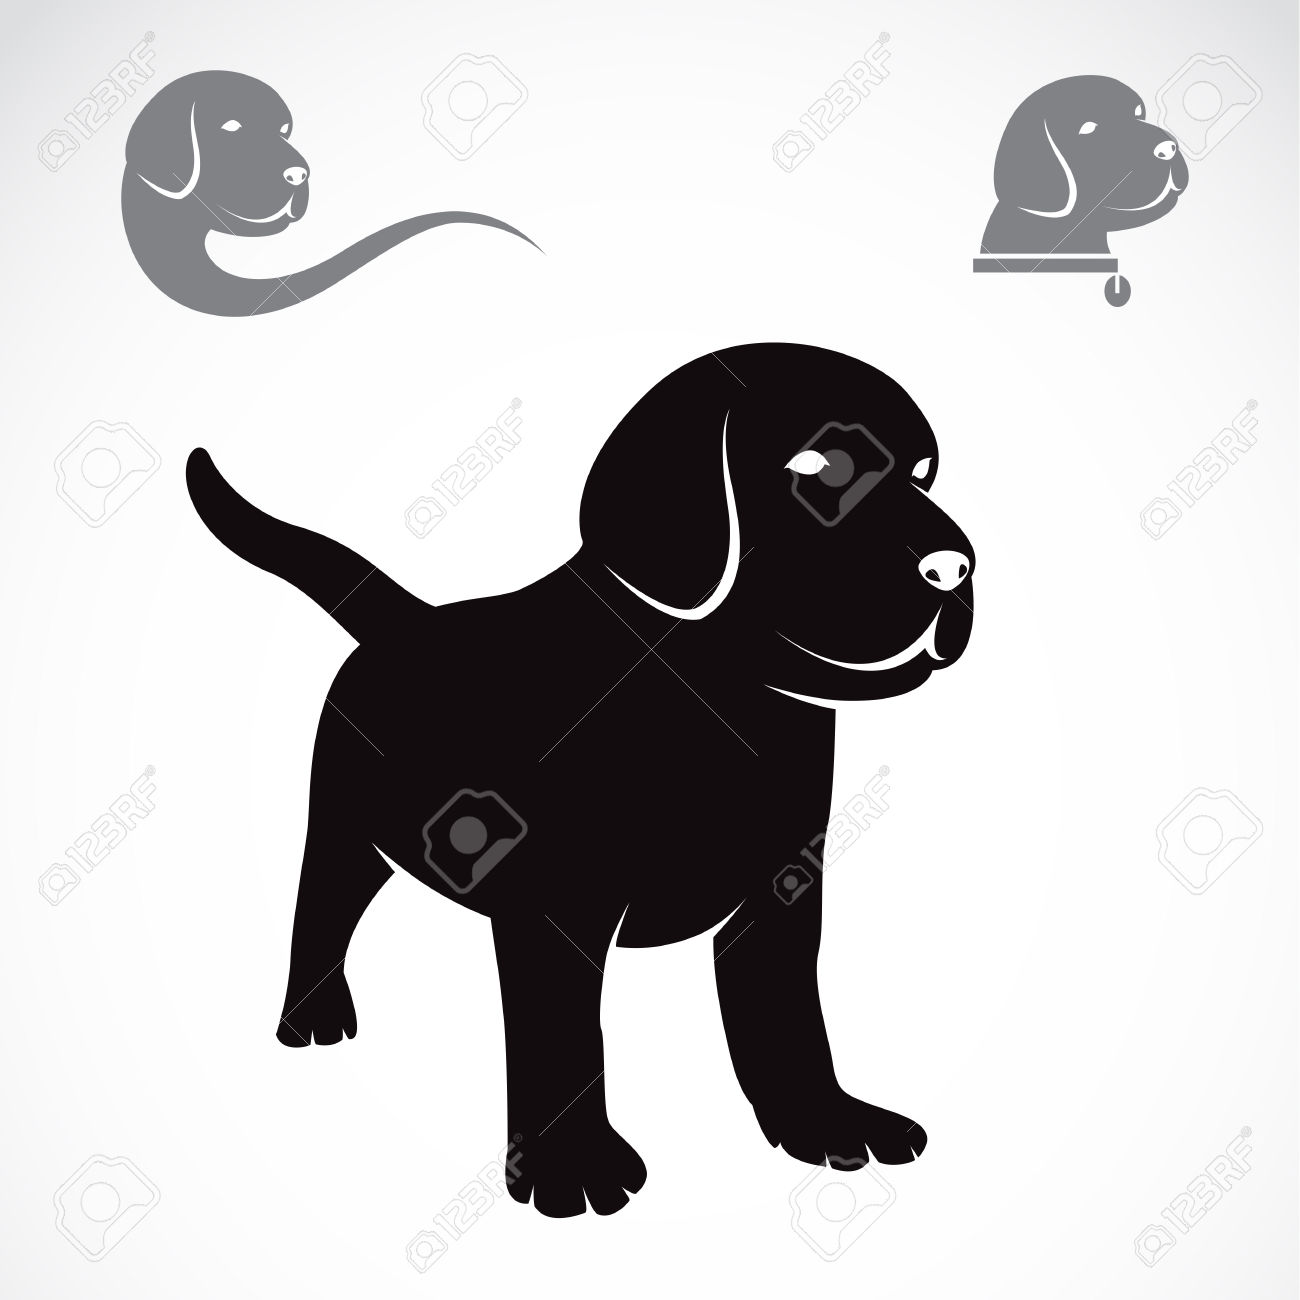 Labrador clipart #3, Download drawings